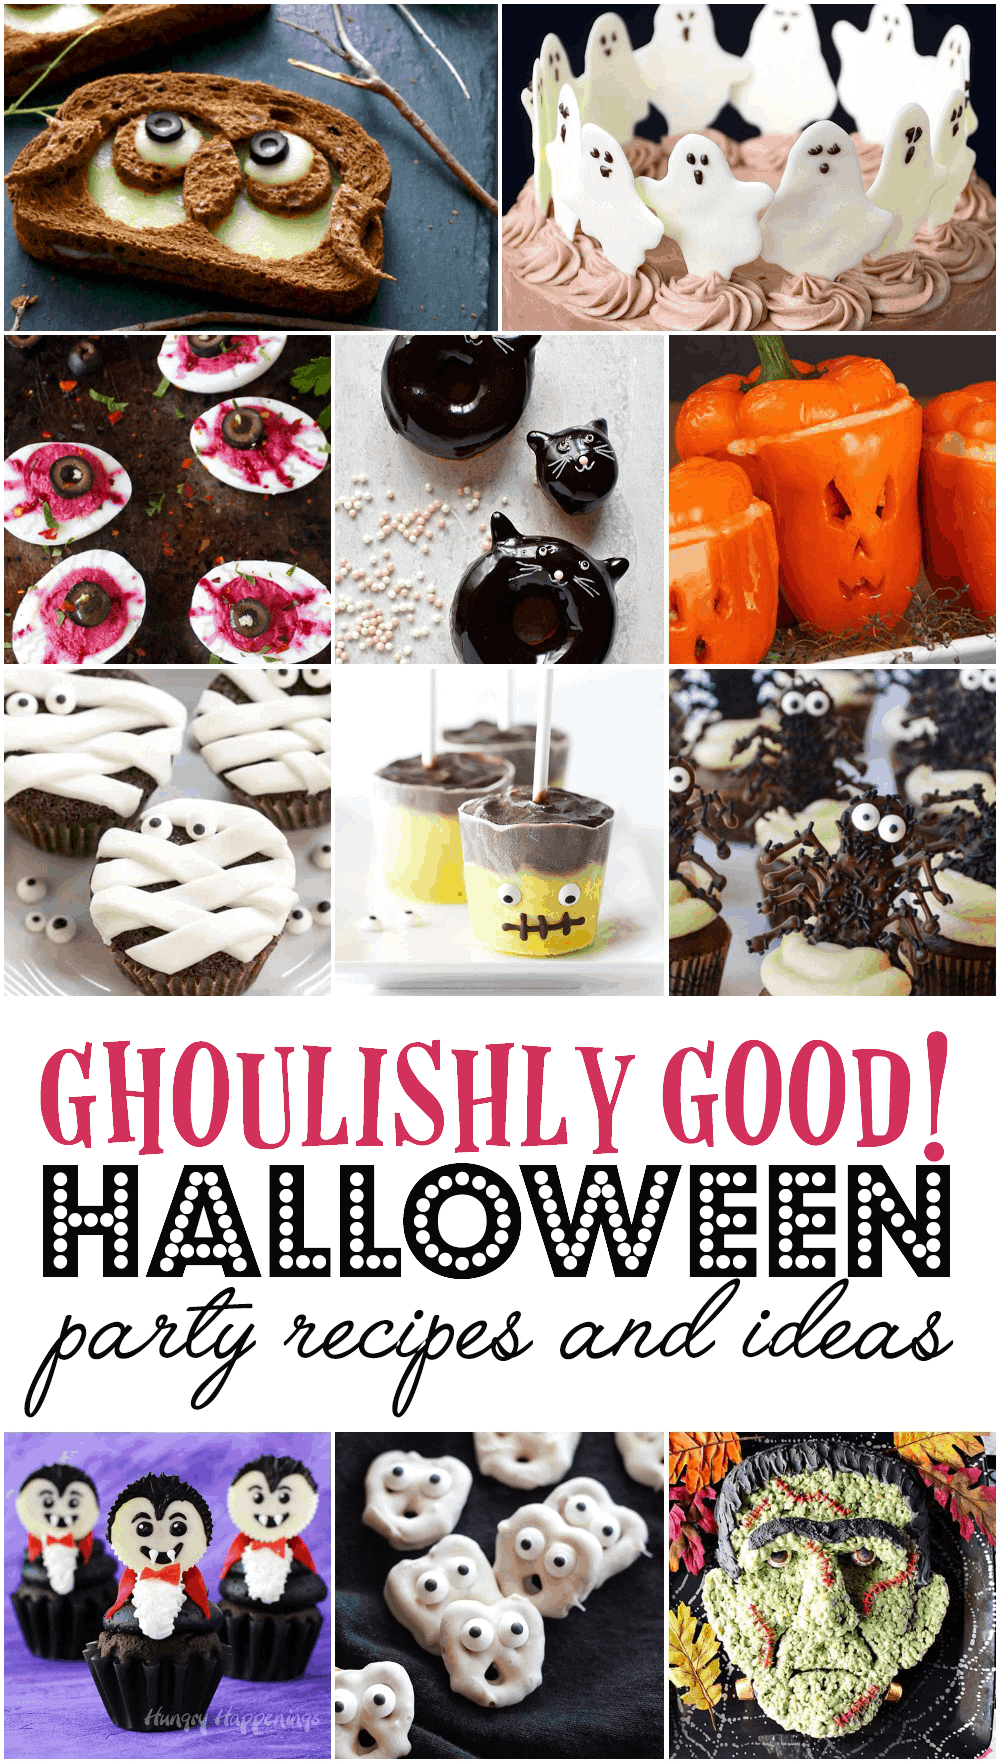 Ghoulishly Good! #Halloween Party Recipes and Ideas--Get your spook on this Halloween! Check out our collection of charmingly frightful  foods that will make your holiday a chilling success!--